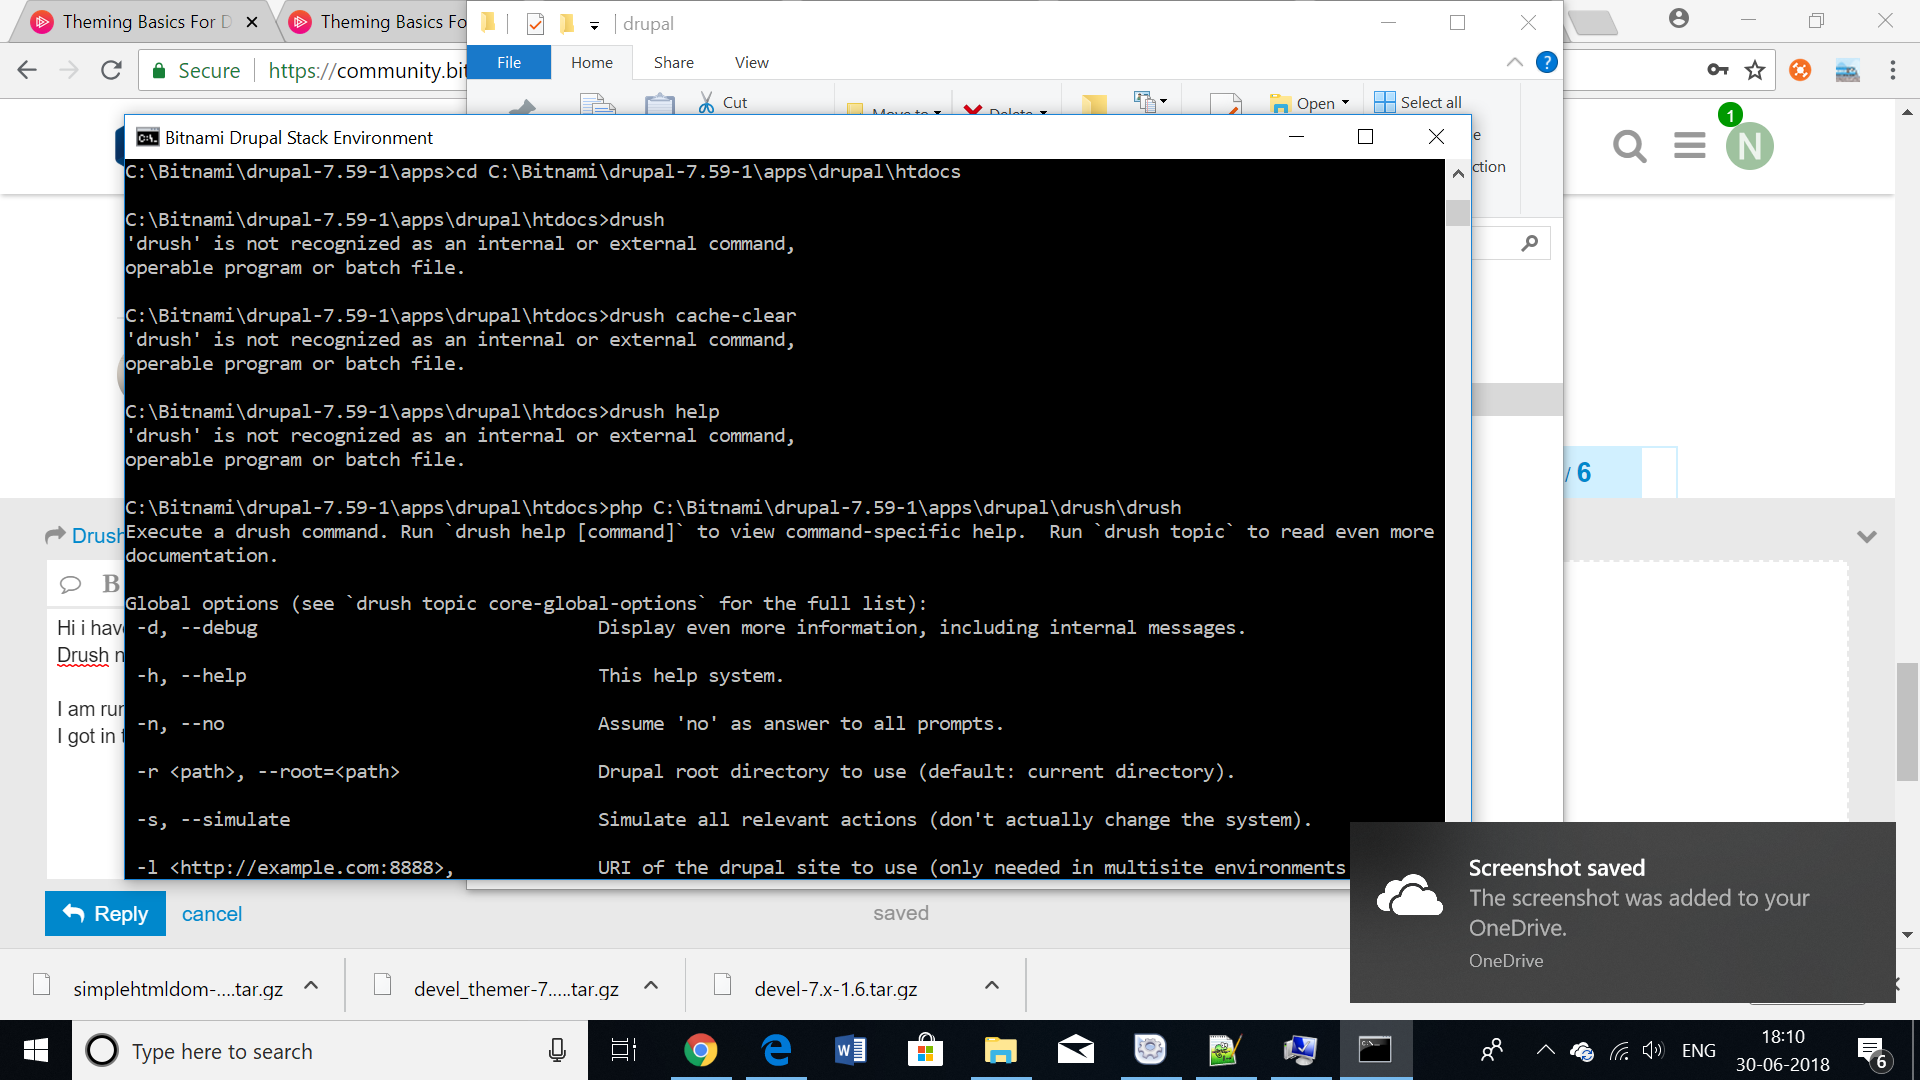 Drush not recognized on local windows bitnami install